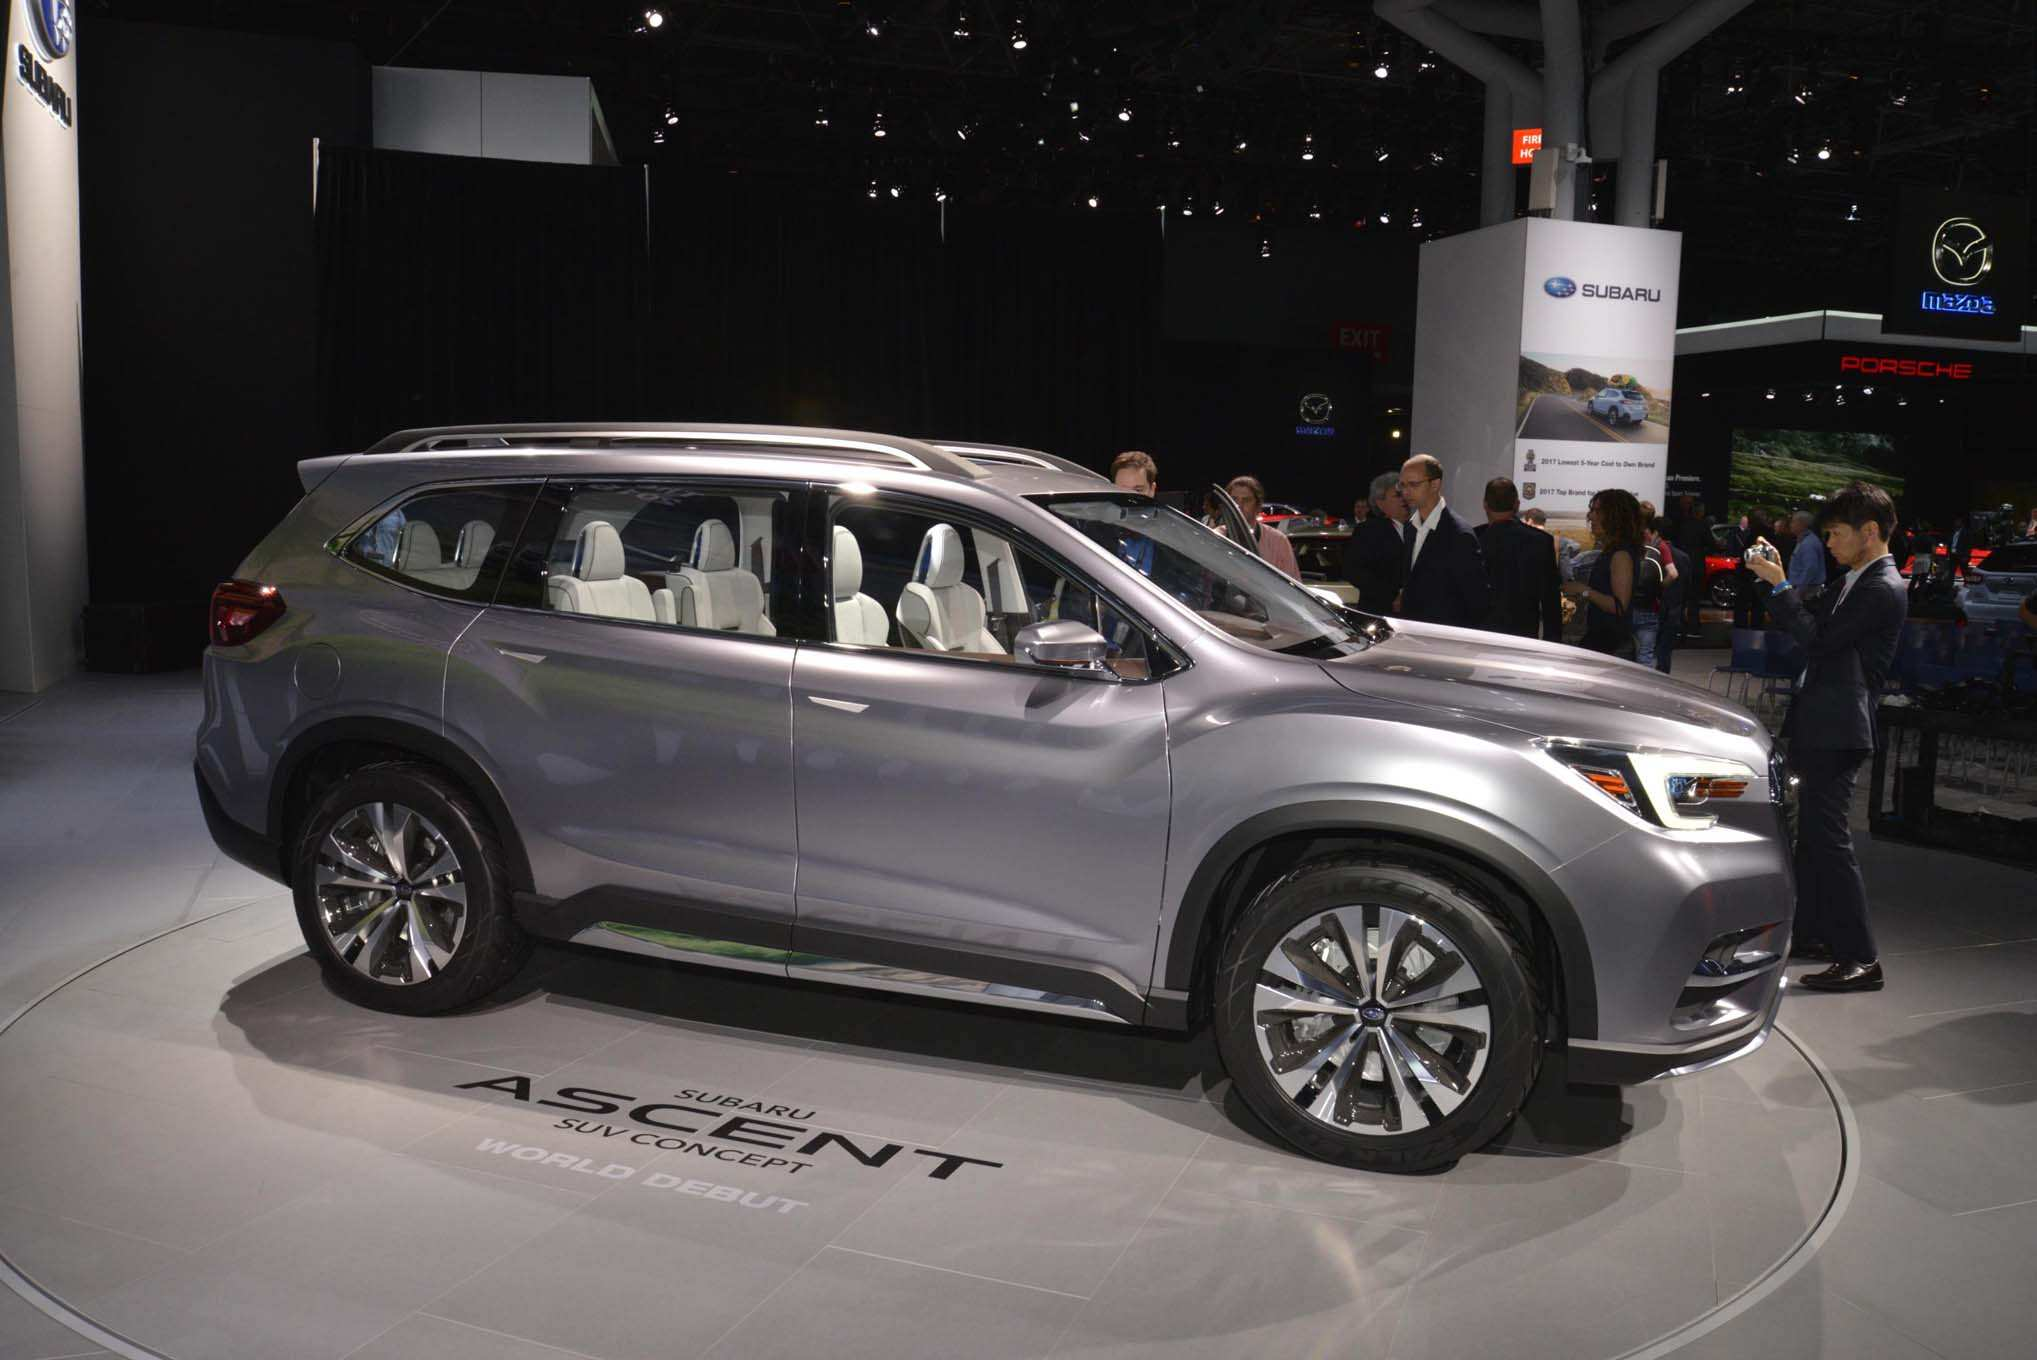 42 All New 2019 Subaru Ascent Video Price and Review by 2019 Subaru Ascent Video